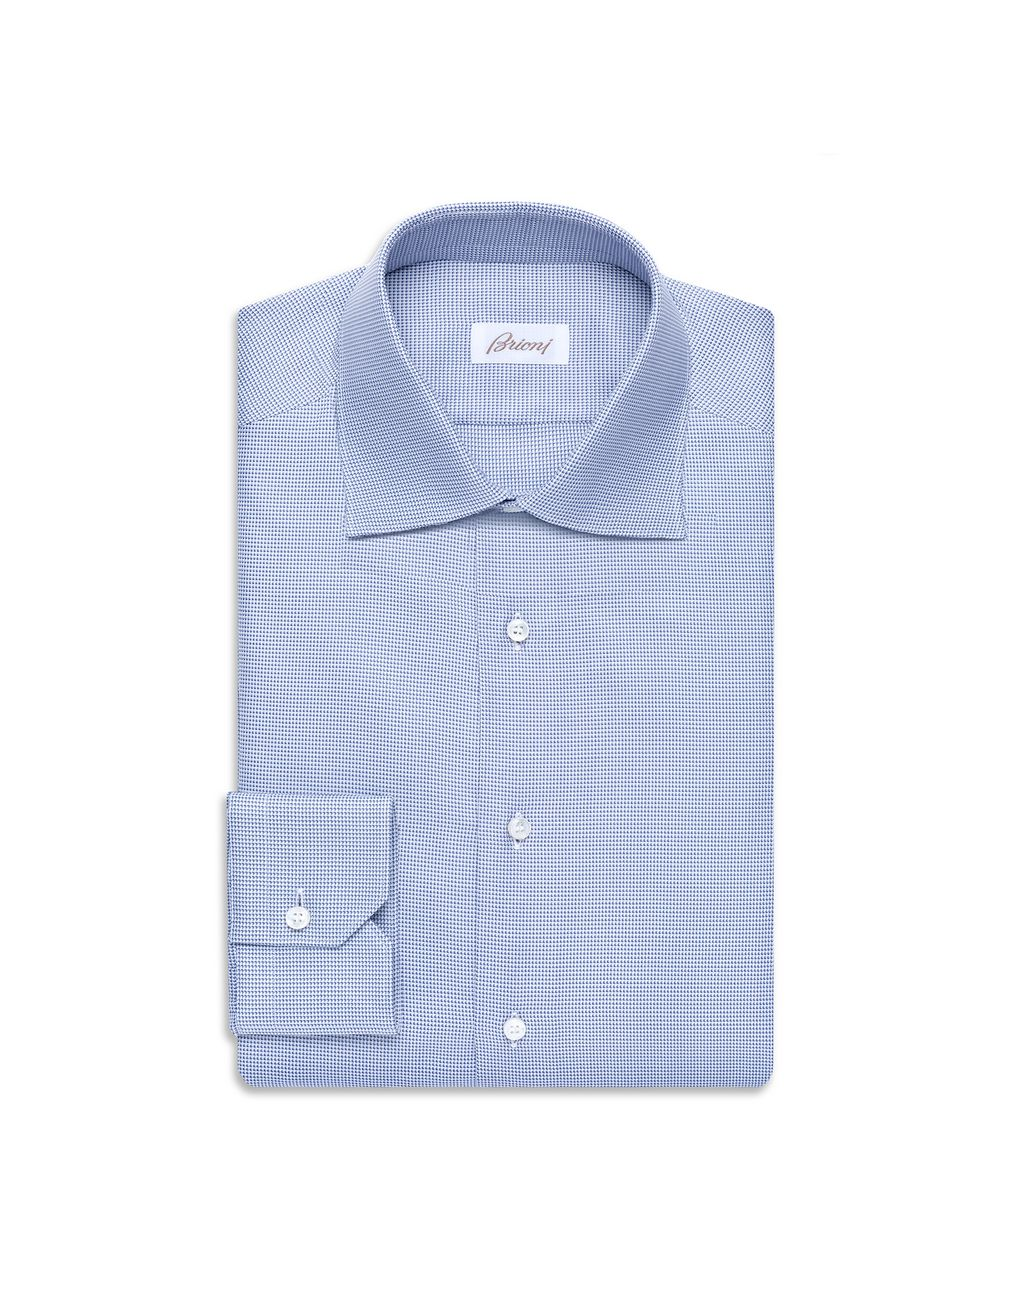 BRIONI Bluette and White Micro-Design Formal Shirt Formal shirt [*** pickupInStoreShippingNotGuaranteed_info ***] f